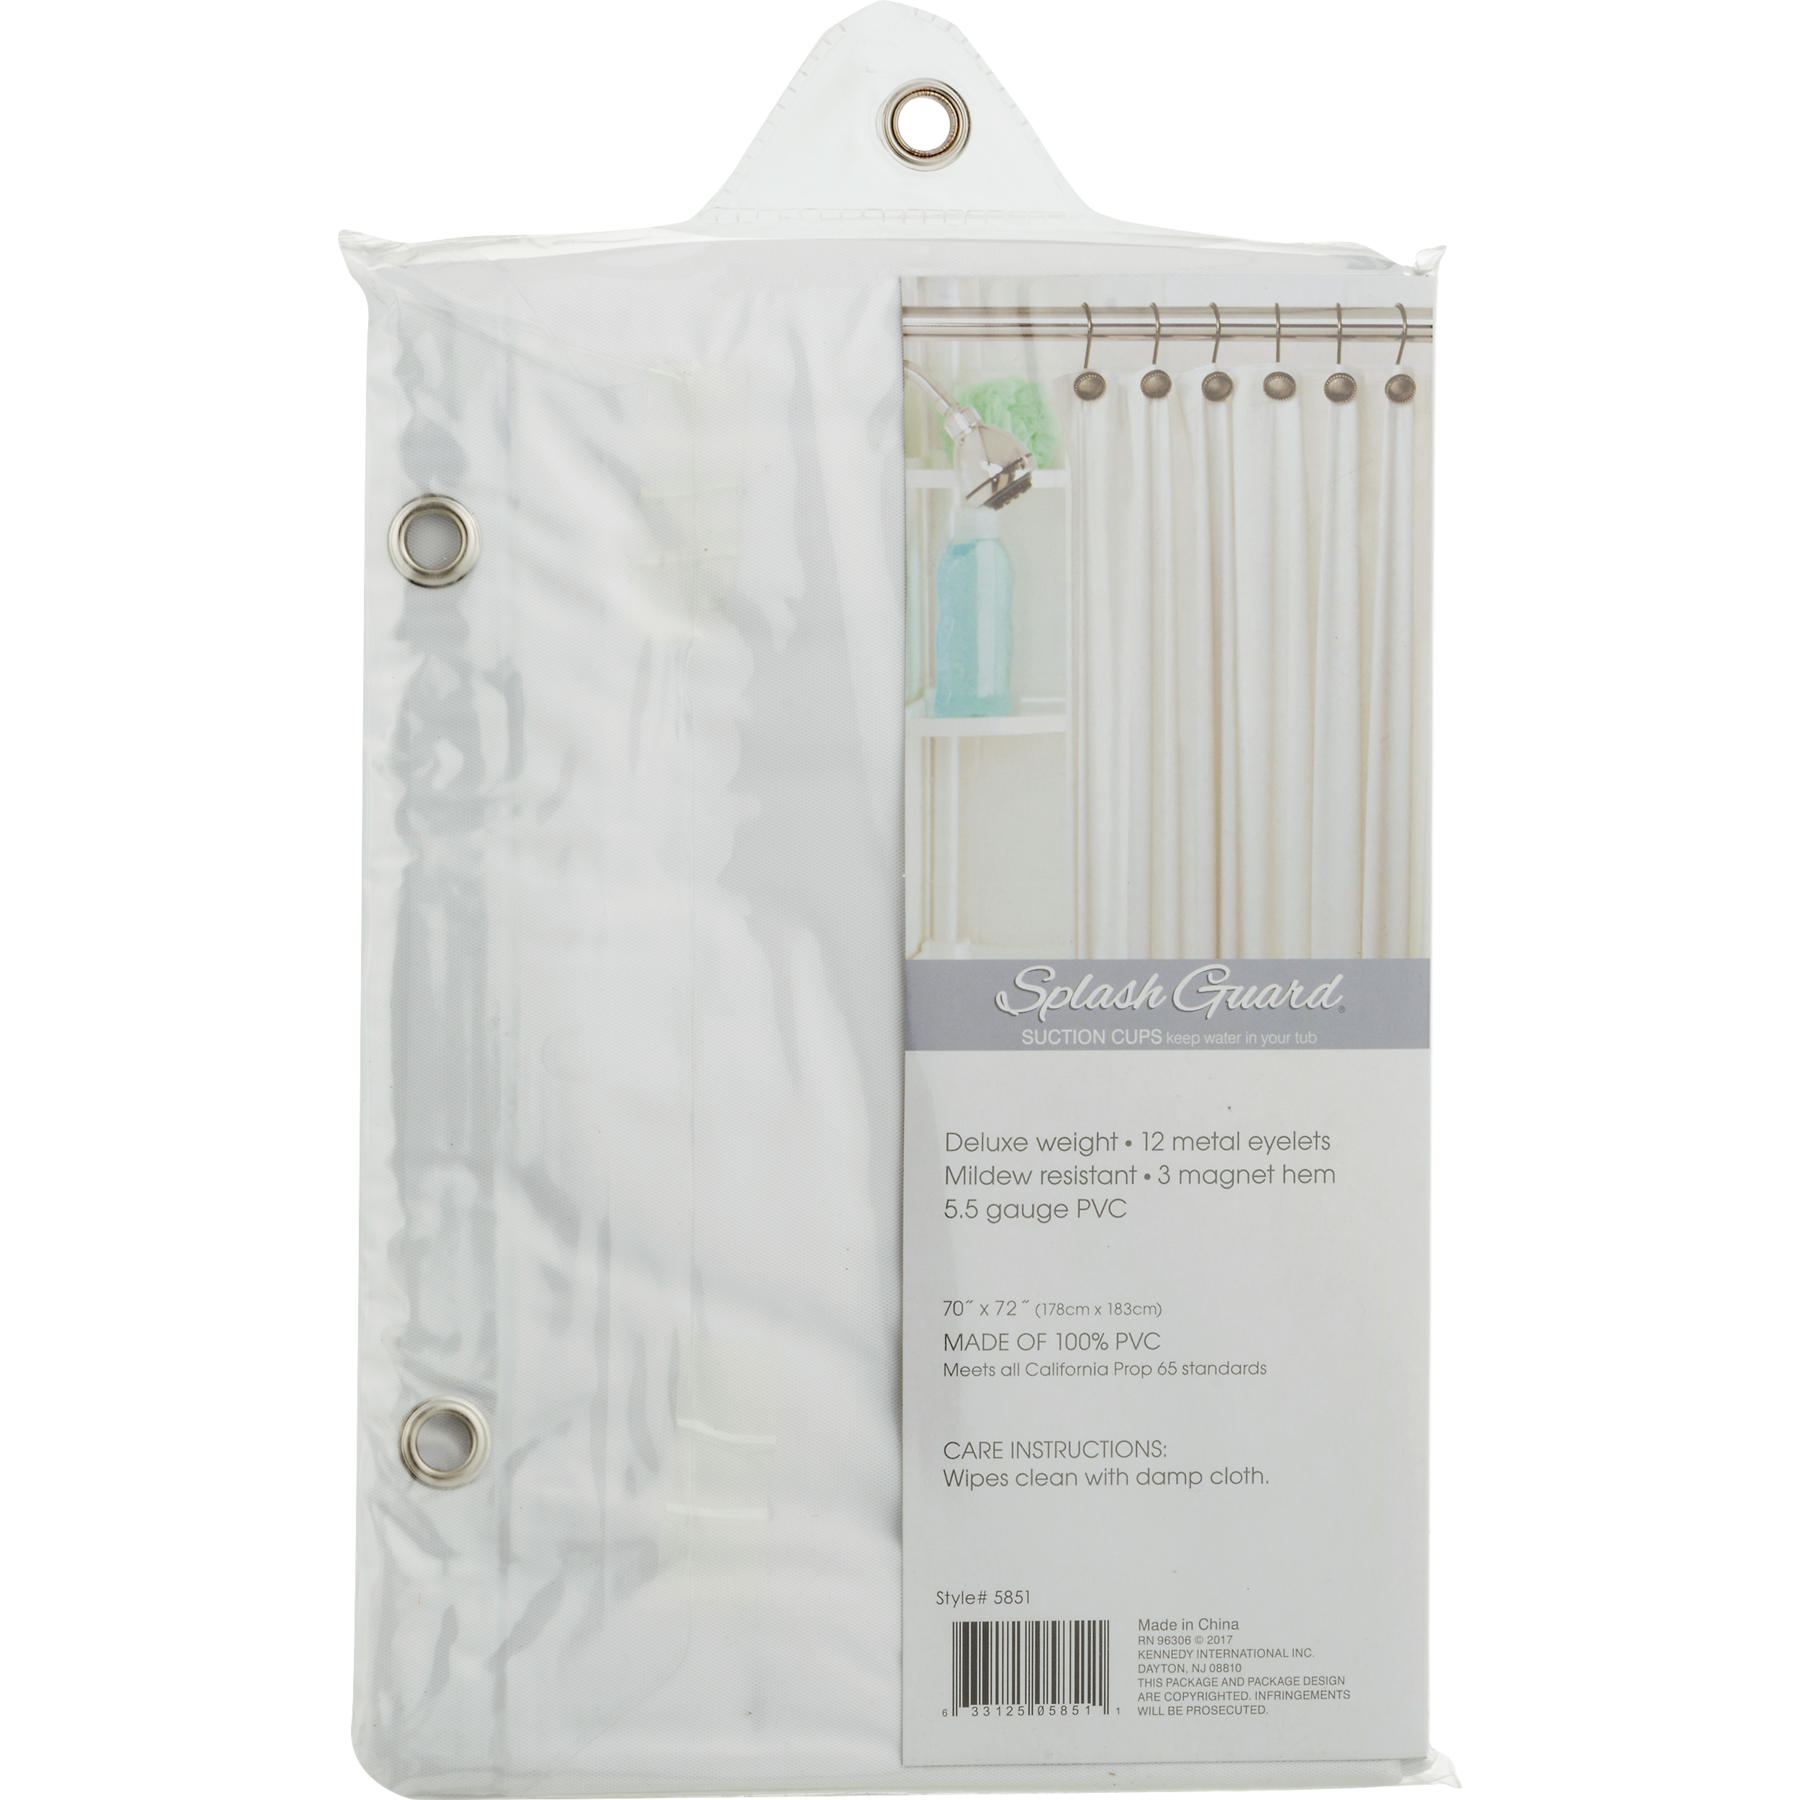 Bath Bliss Premium Shower Curtain Liner Frost